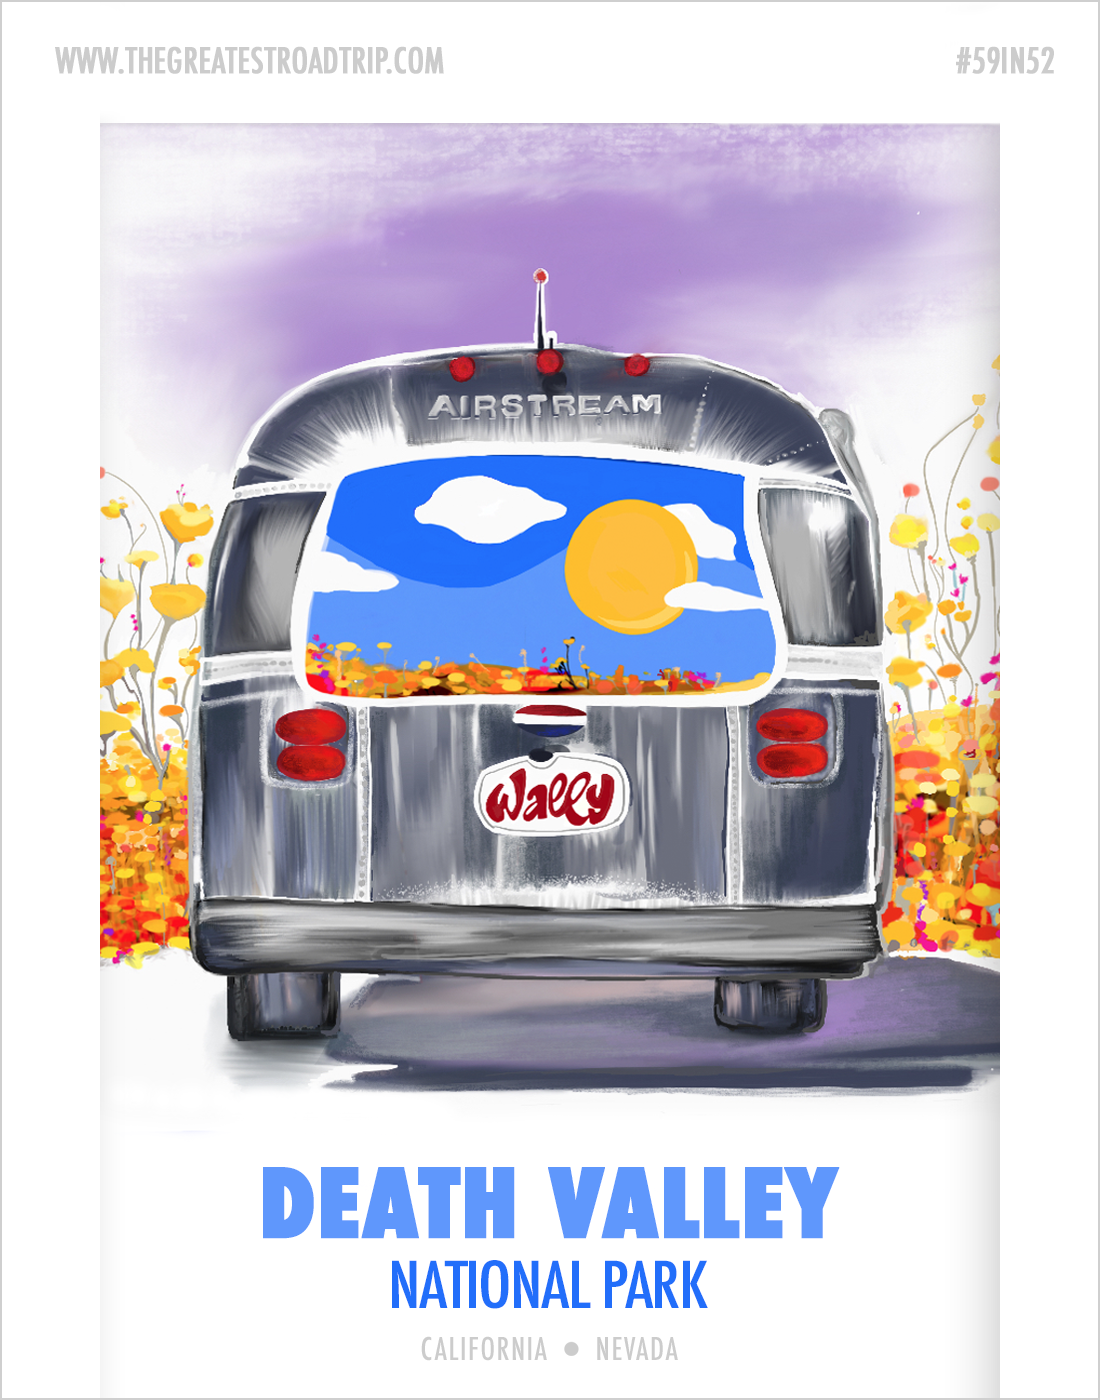 Illustration inspired by Death Valley National Park and Wally the Airstream, our home on the road – created with the Procreate app and Apple Pencil on the iPad Pro.